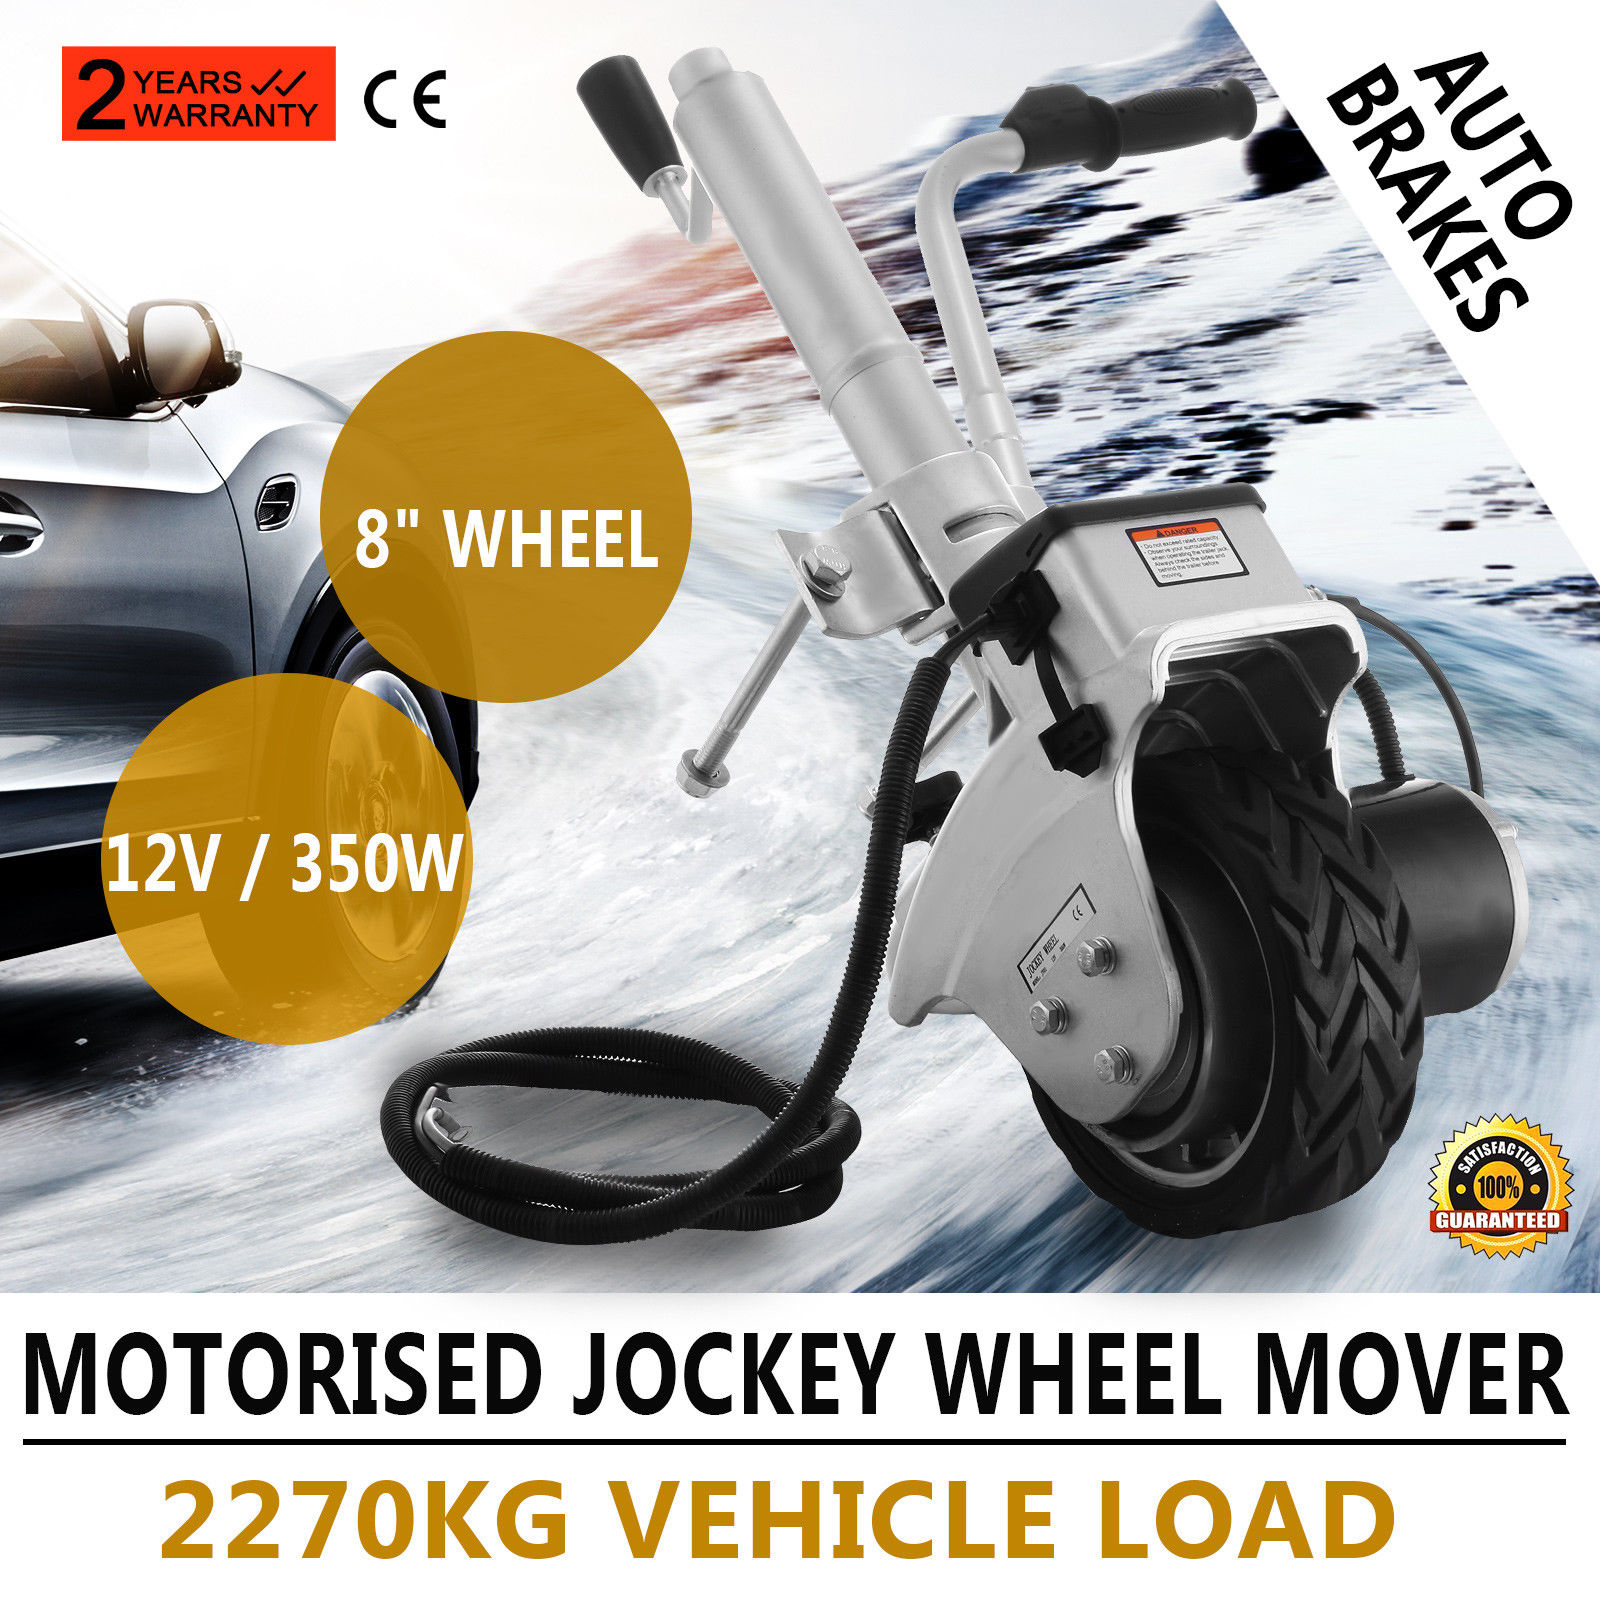 12V 350W Motorised Electric Power Trailer Mover Camper Caravan Boat Trailer Jack With Solid Rubber Wheel Tongue Jack